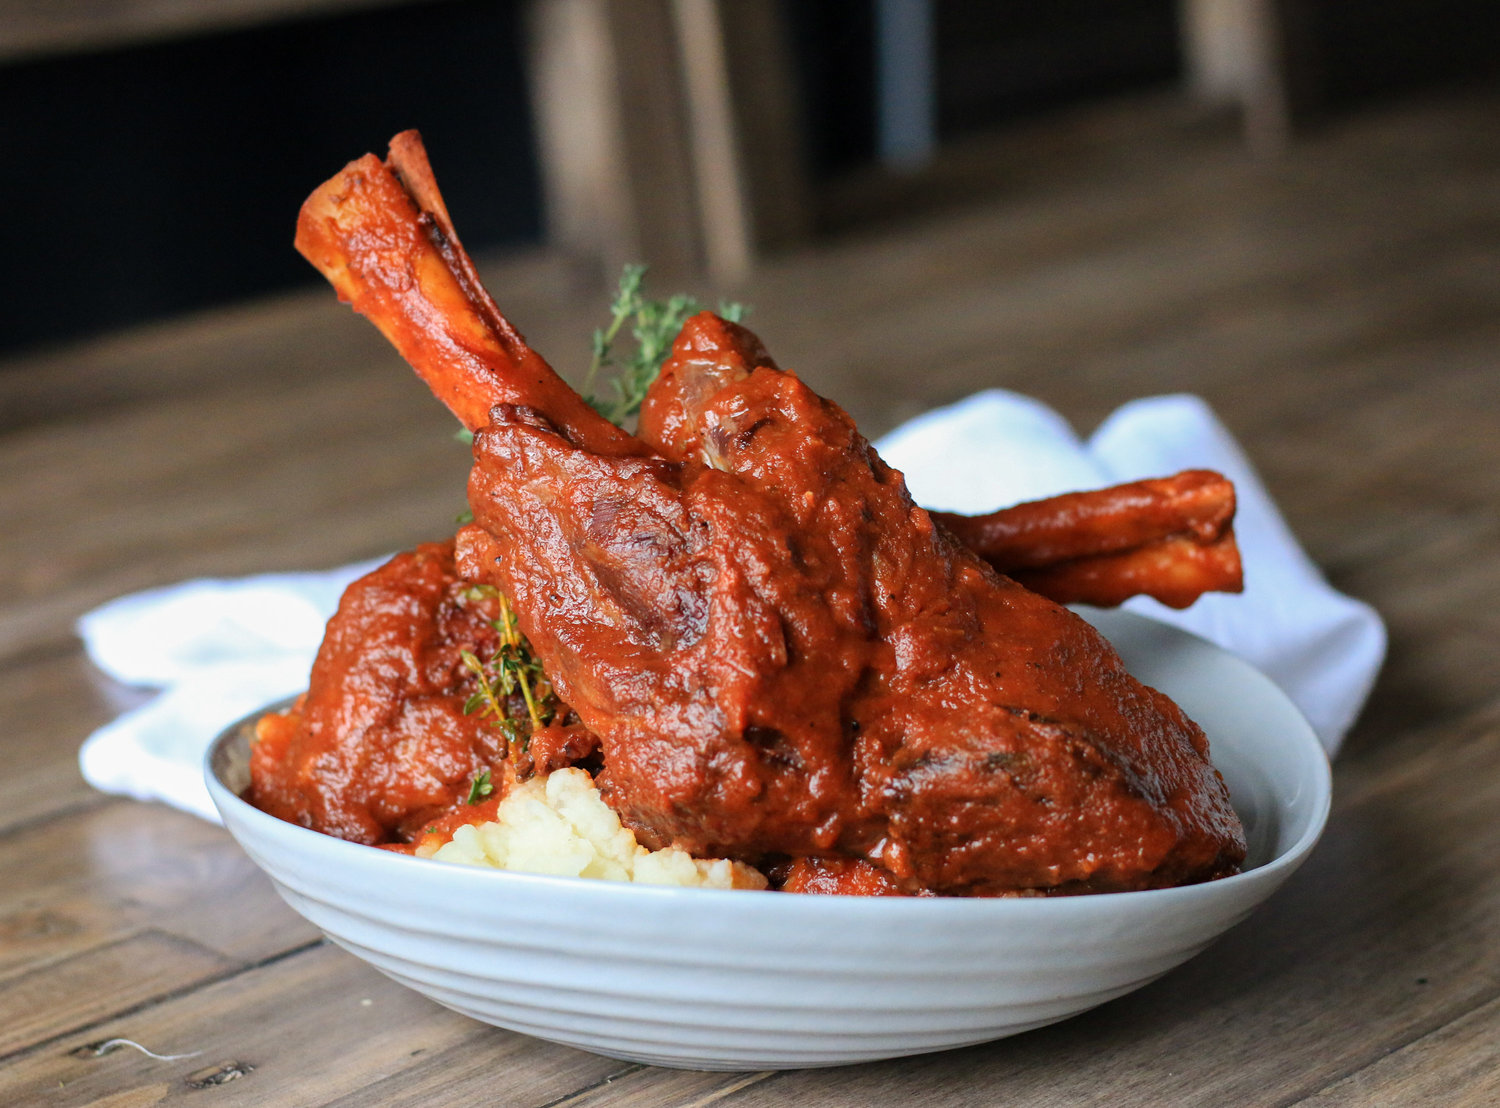 Braised Lamb Shanks with Cauliflower Mashed Potatoes